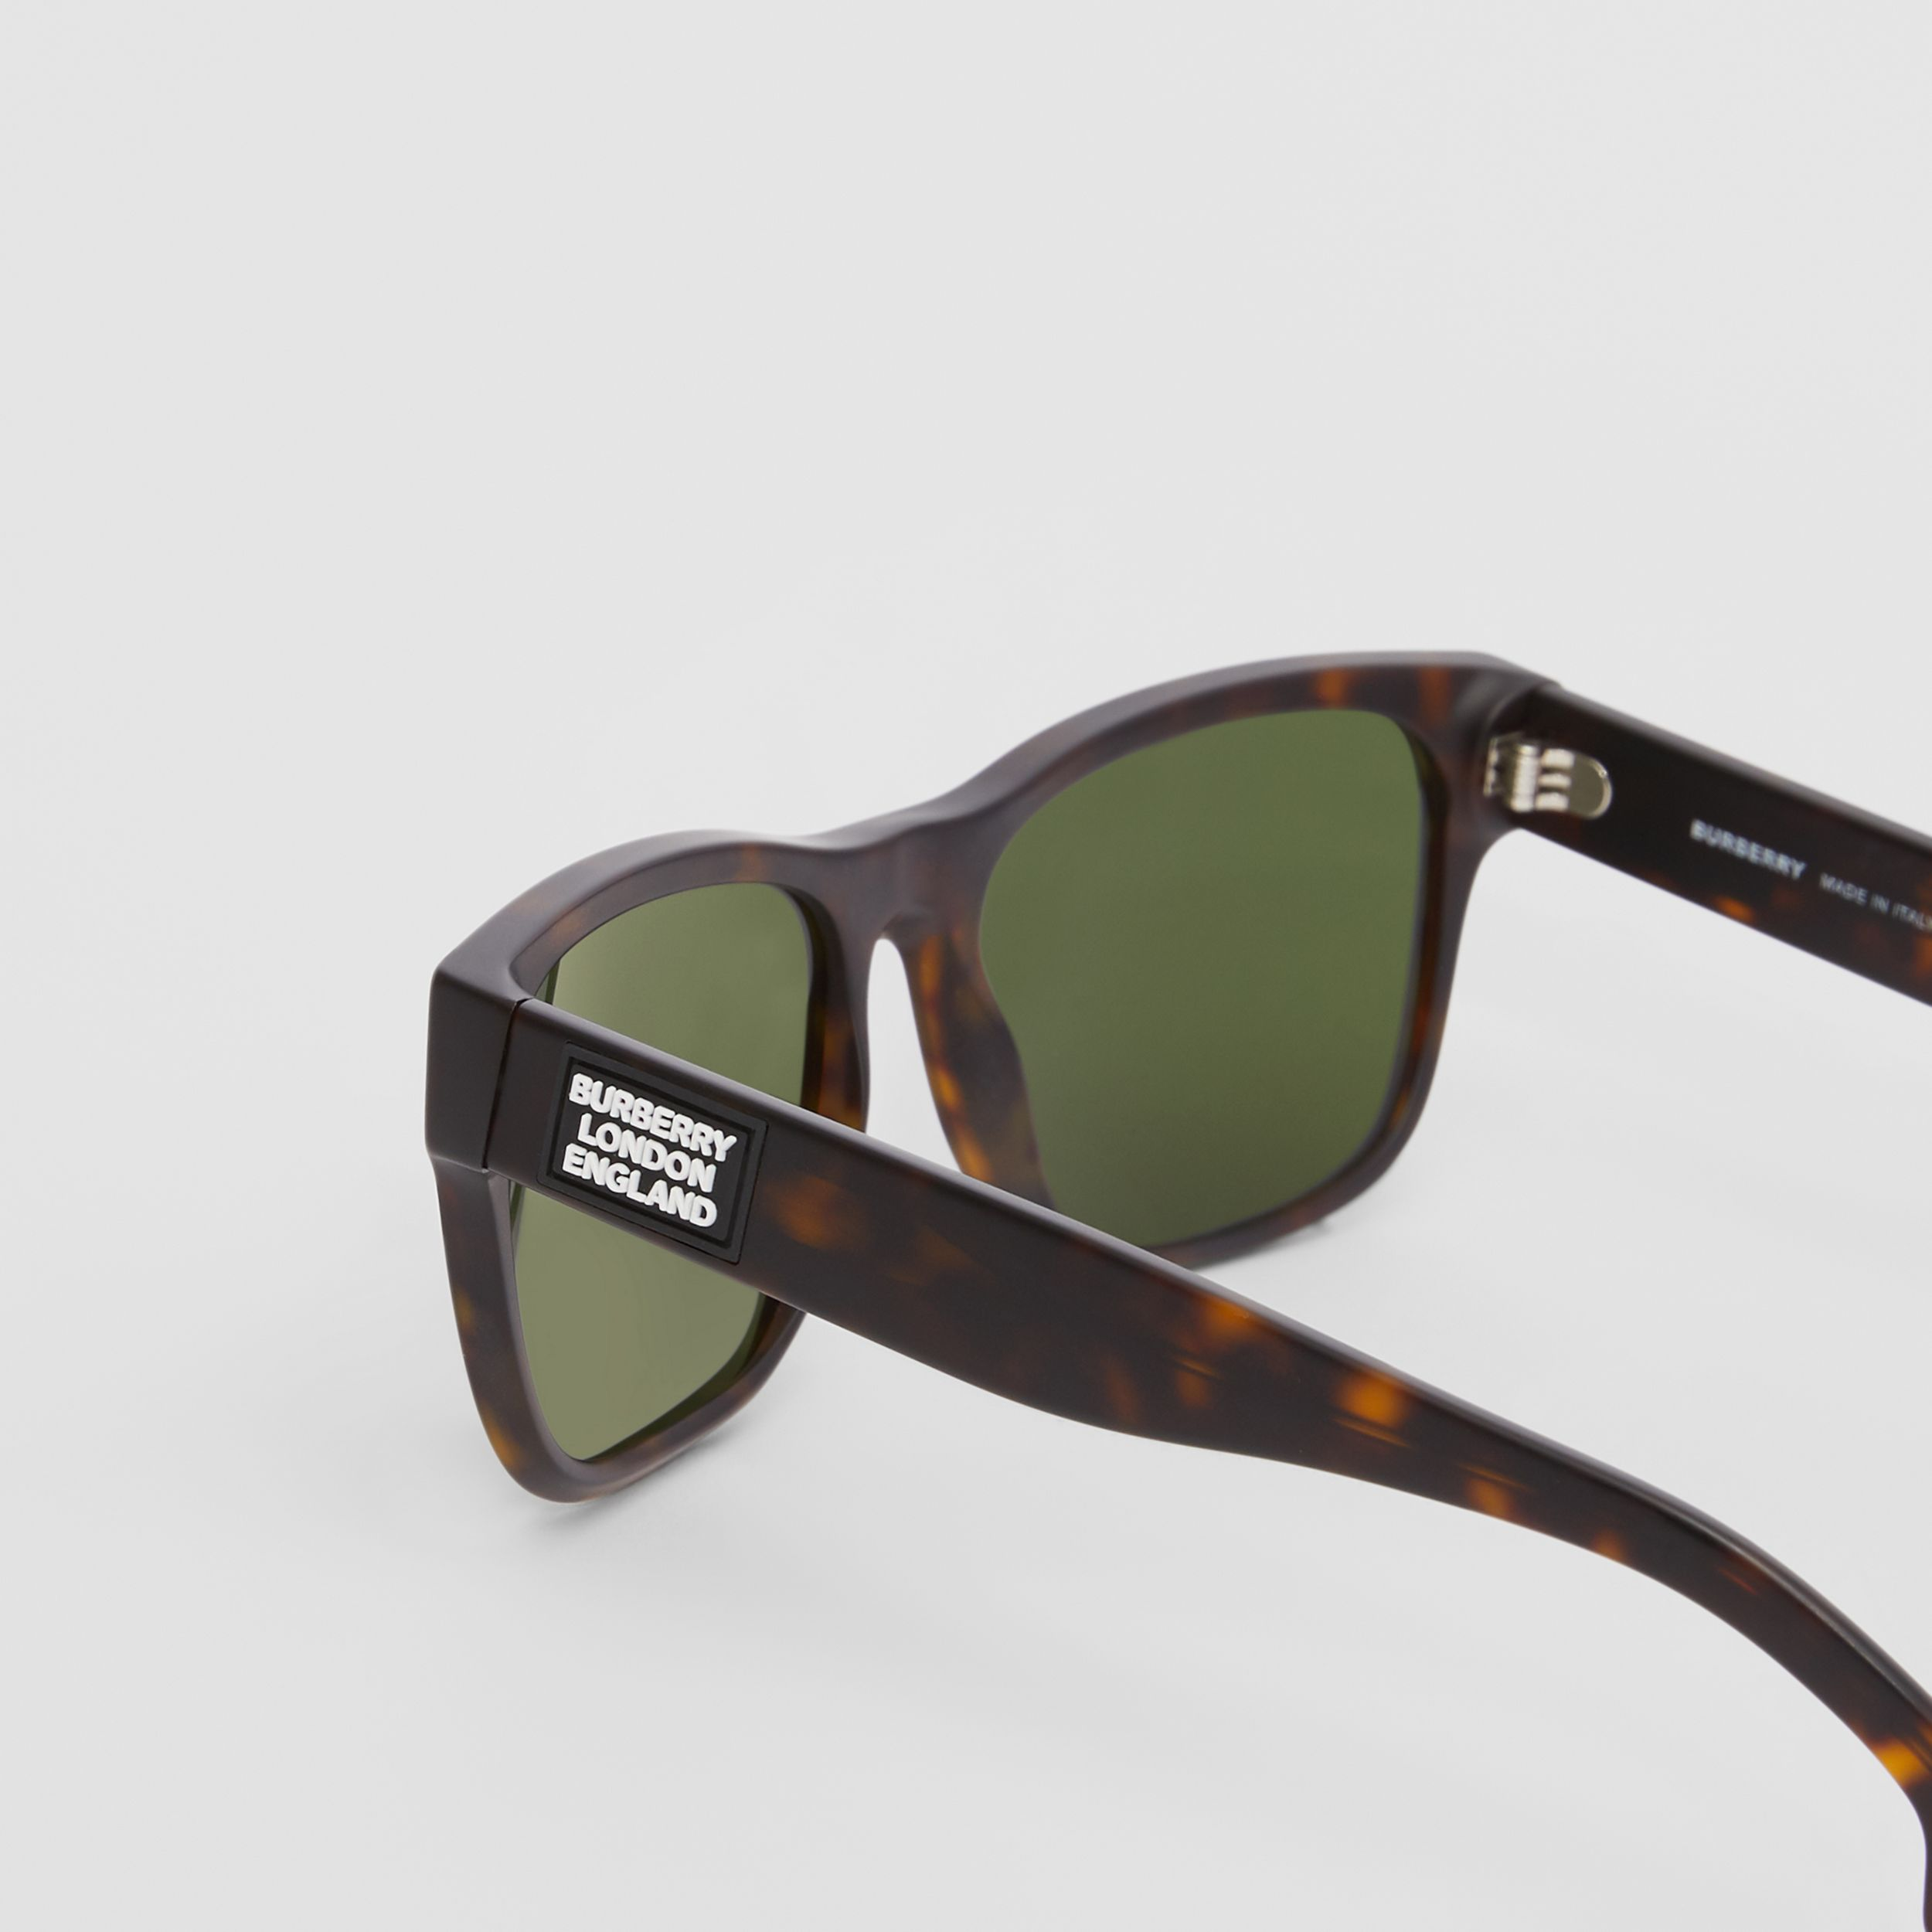 Logo Appliqué Square Frame Sunglasses in Tortoiseshell | Burberry - 2